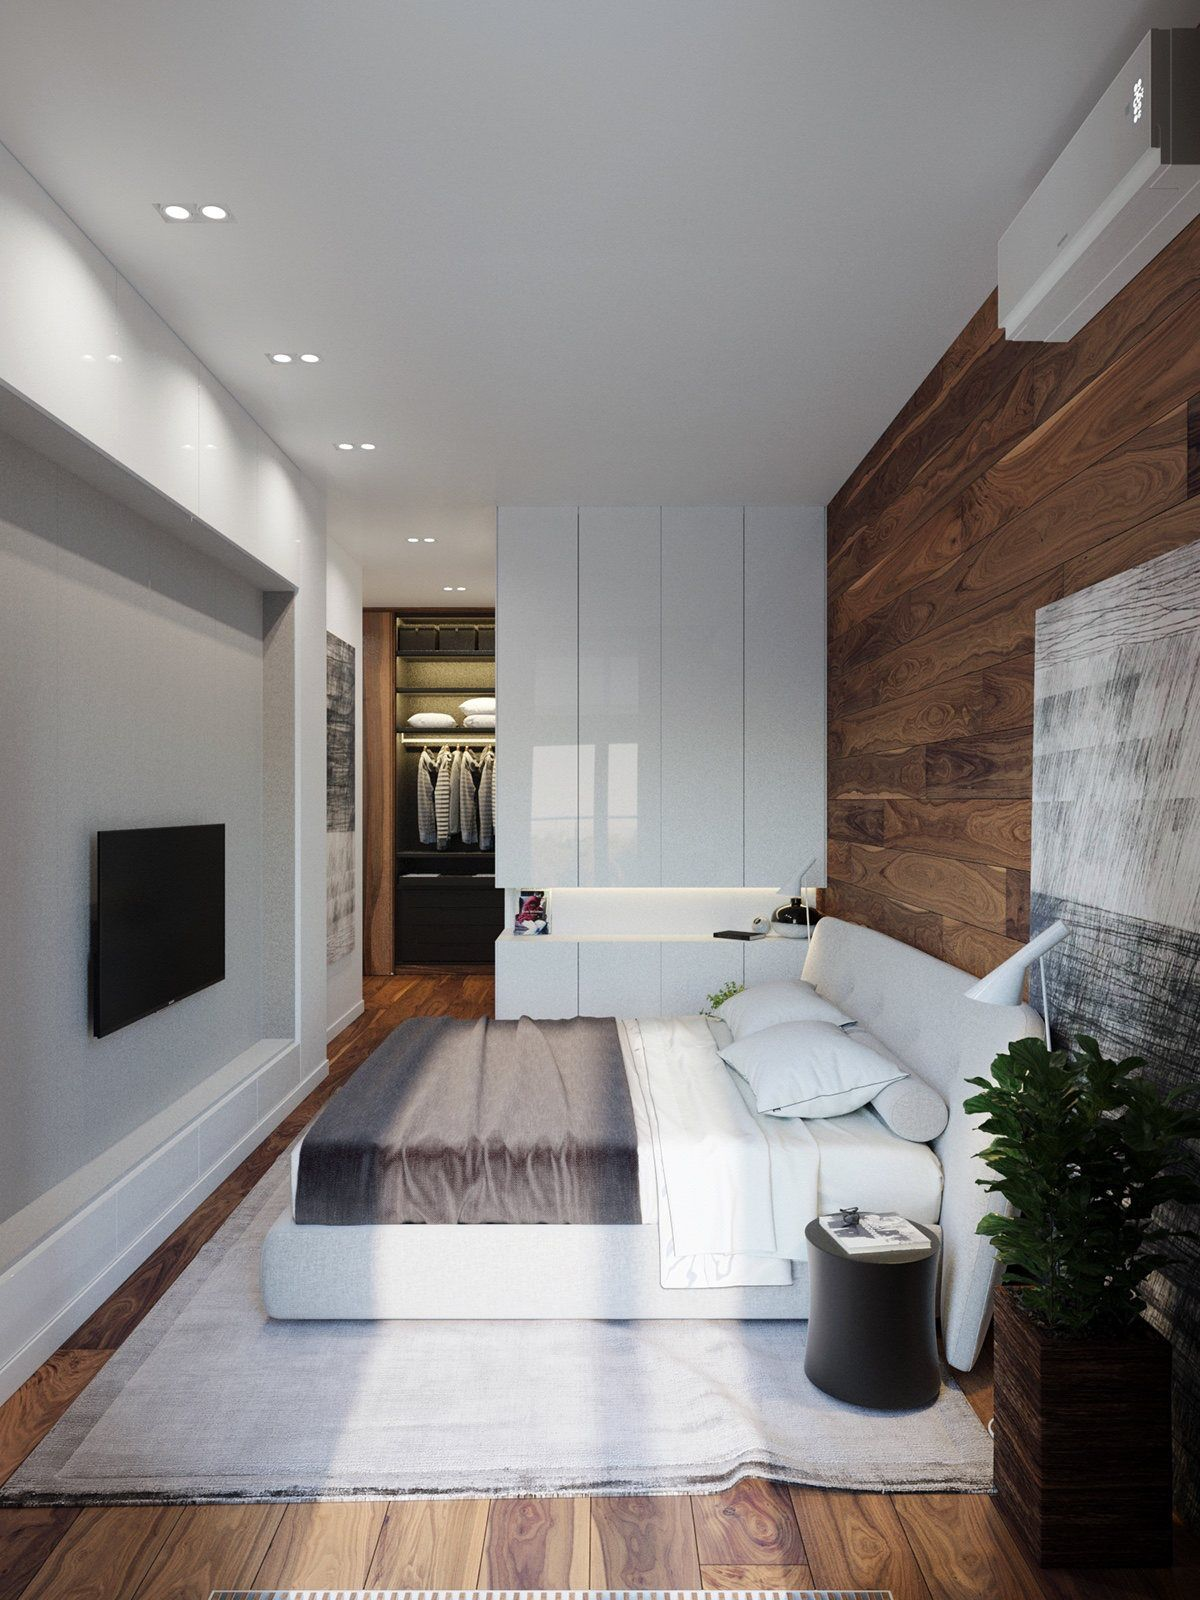 Beds For Small Studio Apartments Applying A Rustic Studio Apartment Design Which Decor By